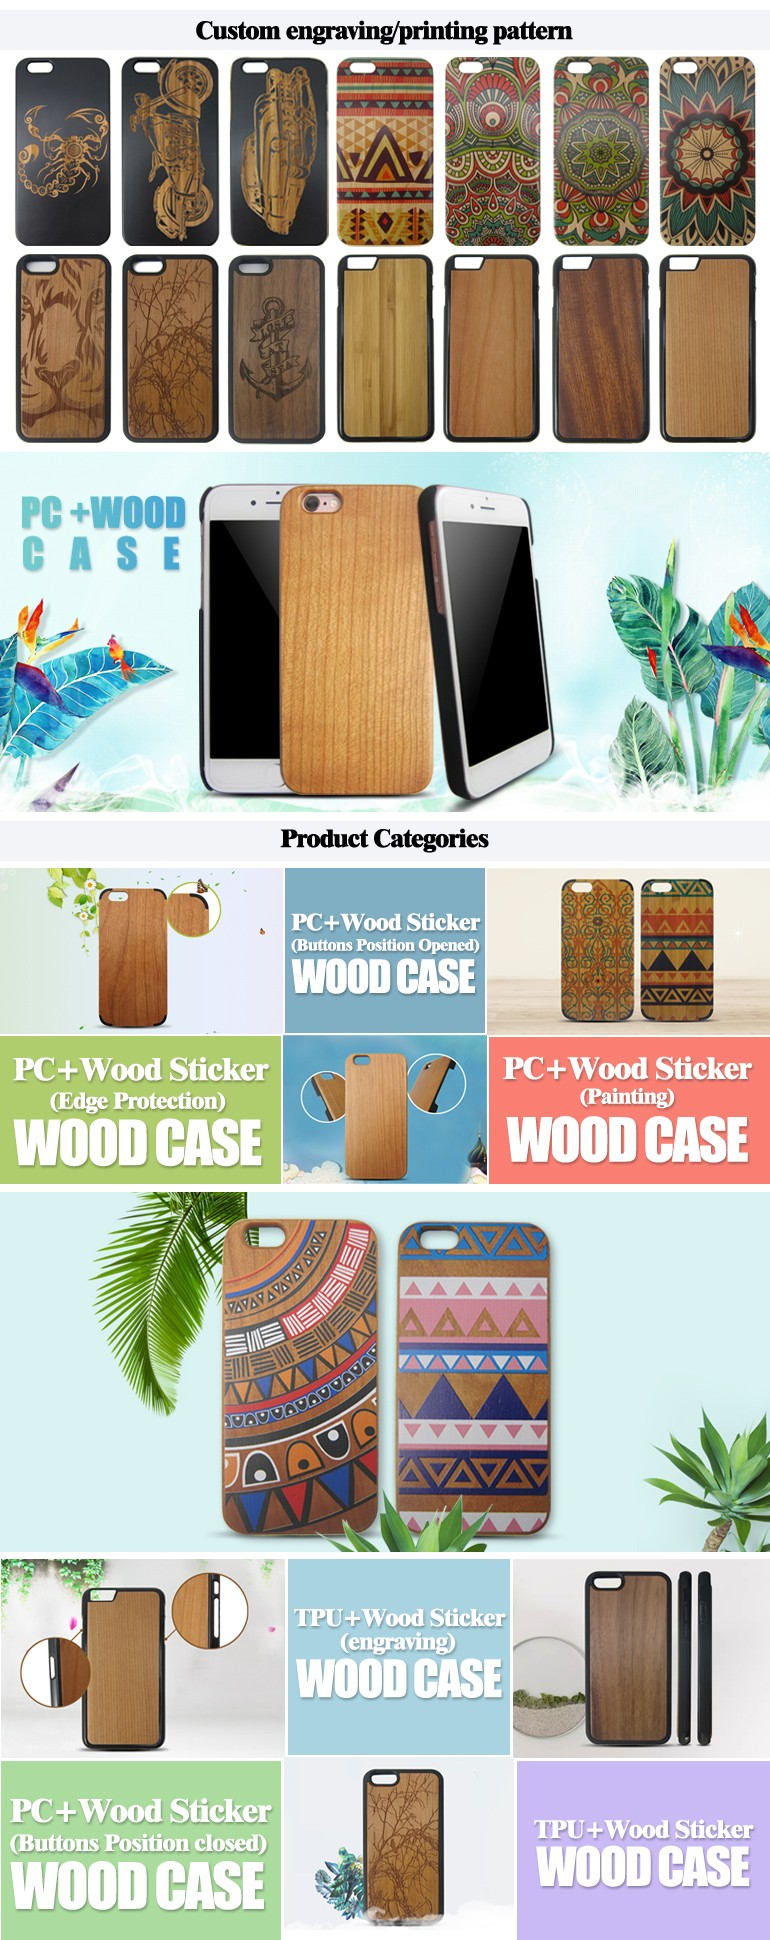 For iPhone TPU PC wooden mobile phone case TPU PC soild wood phone case